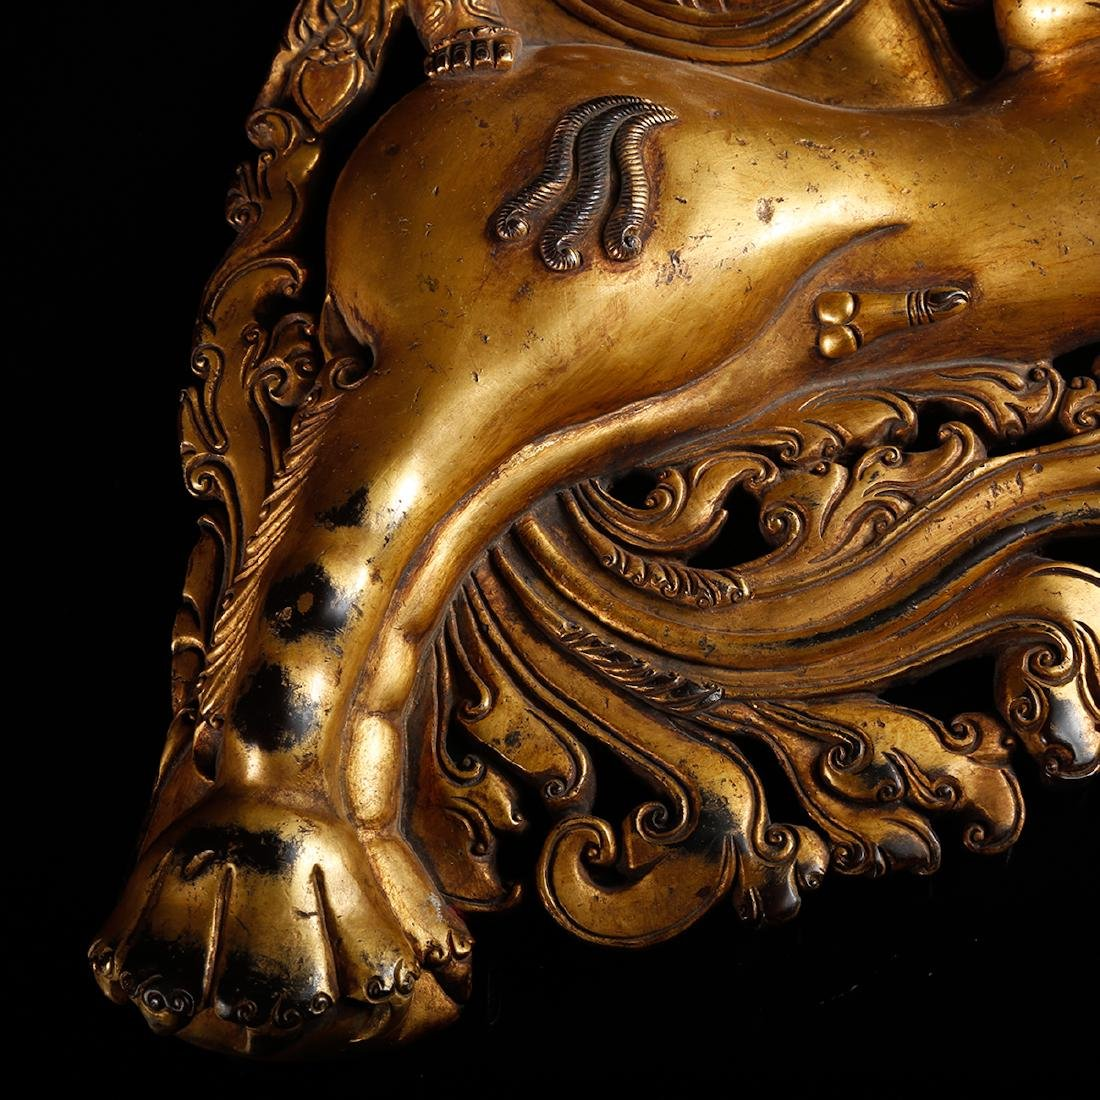 CHINESE GILT BRONZE FIGURE OF BUDDHA ON BEAST - 8